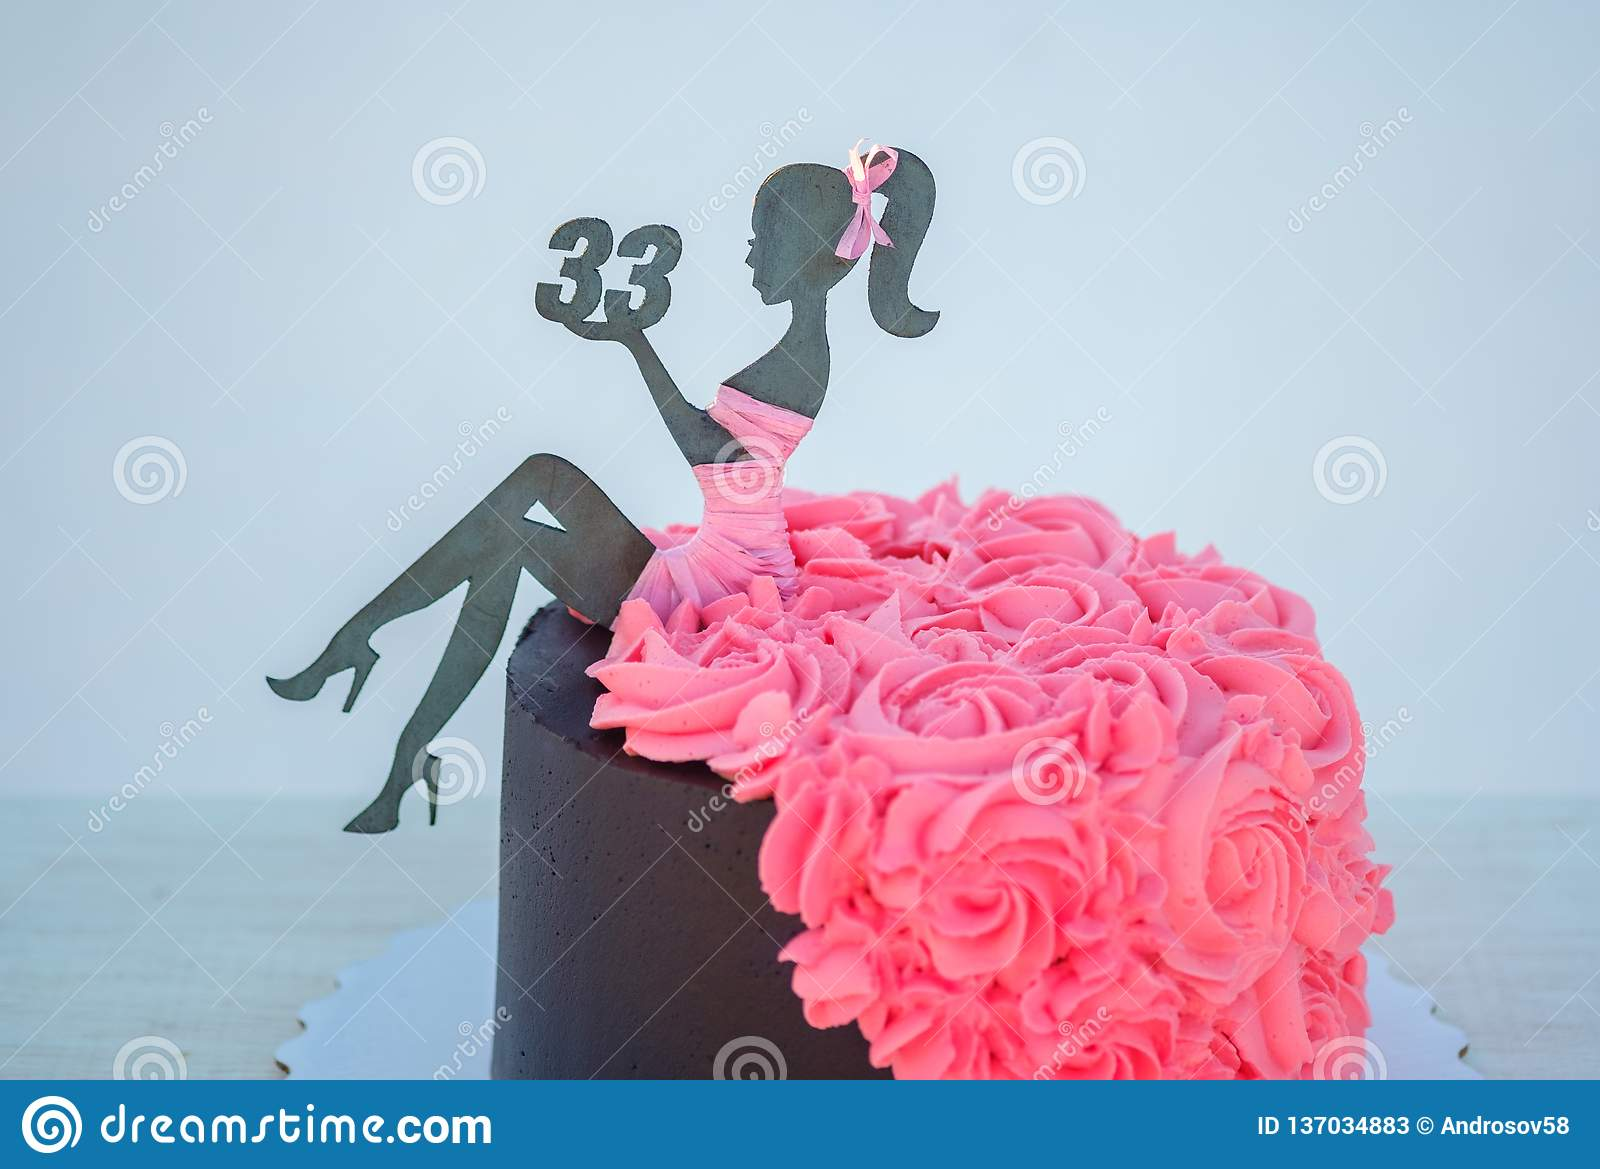 Beautiful Birthday Cake With A Figure Of Woman And The Number Thirty Three